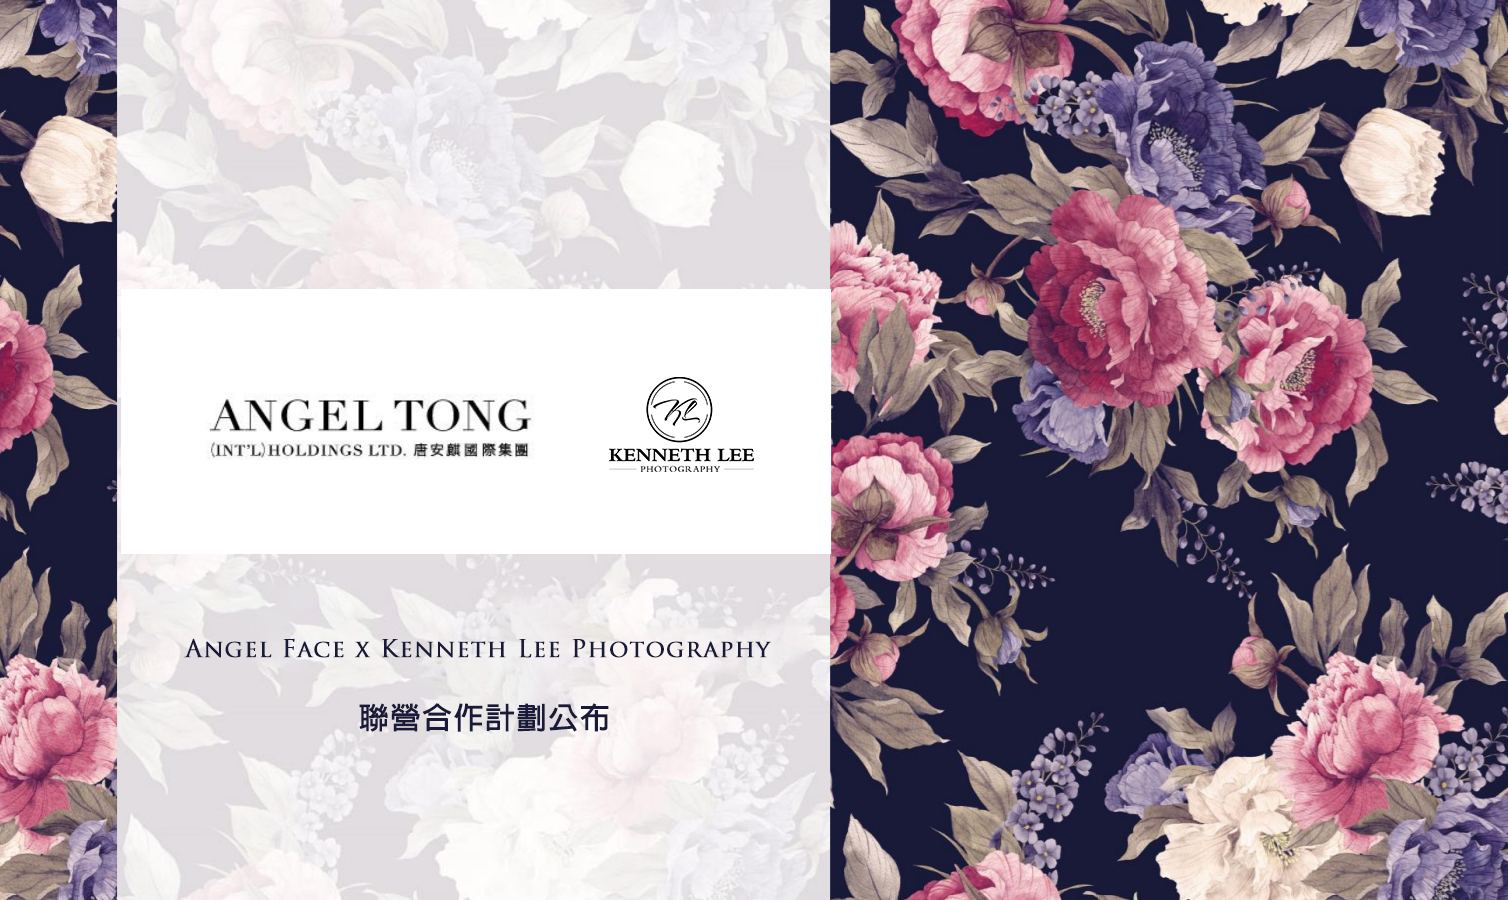 angel_face_angel_tong_promotion_coupon